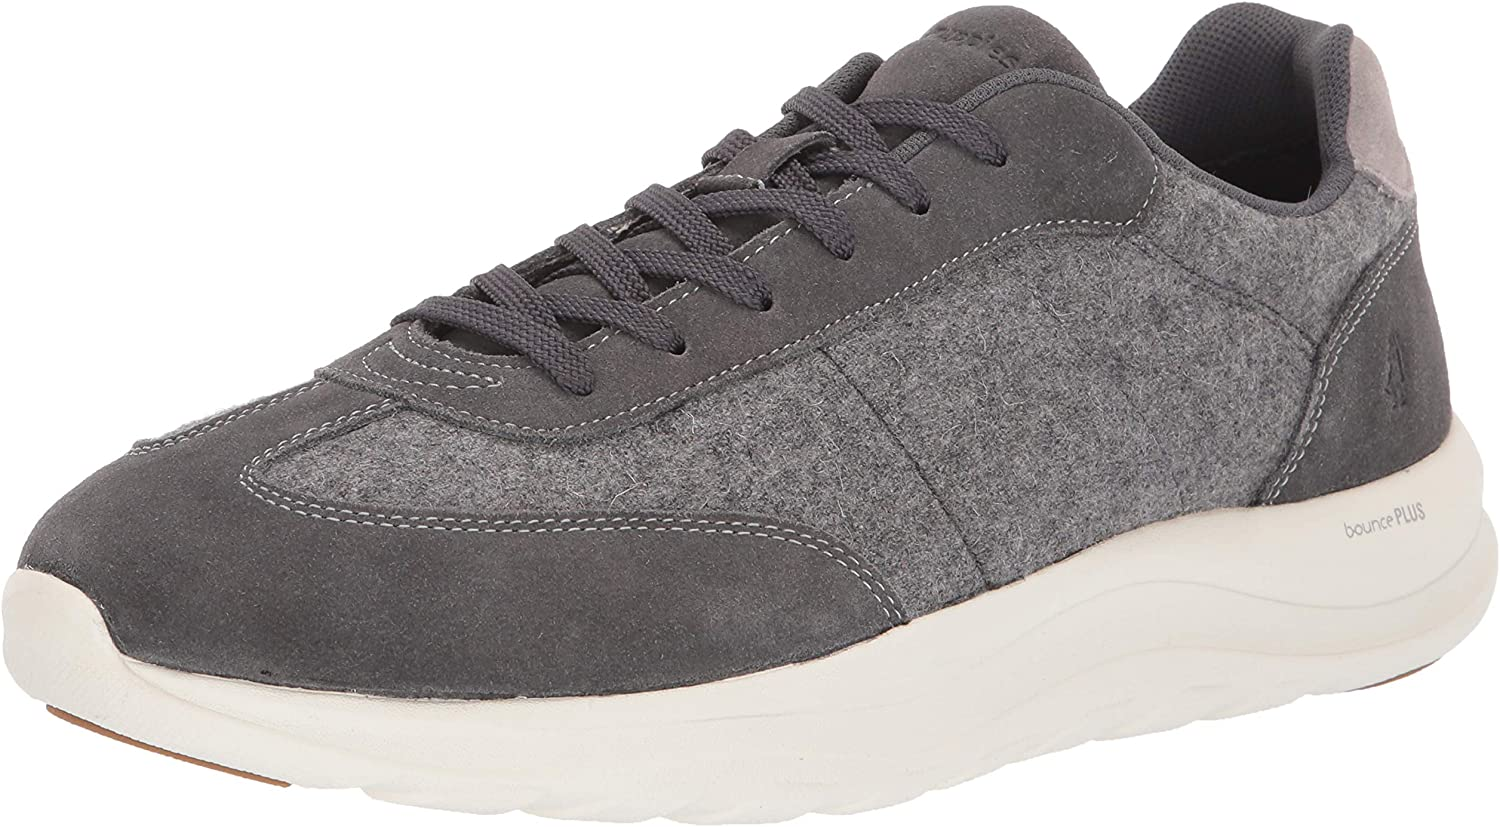 SEAL limited product Hush We OFFer at cheap prices Puppies Men's Oxford Slater Sneaker